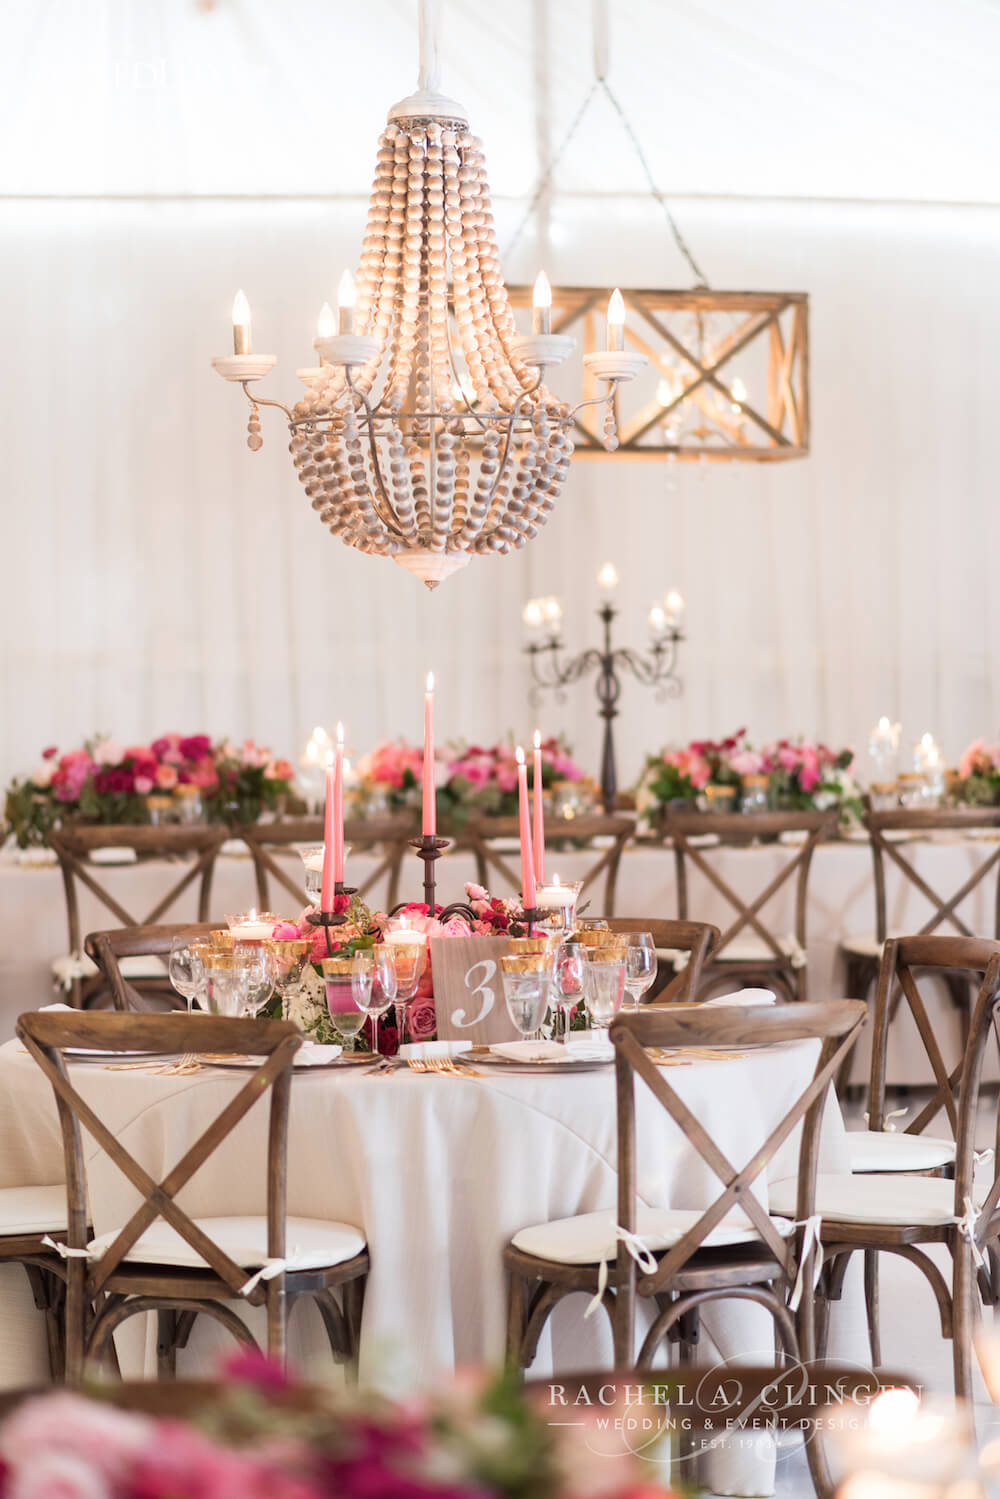 muskoka-tent-wedding-decor-chandeliers